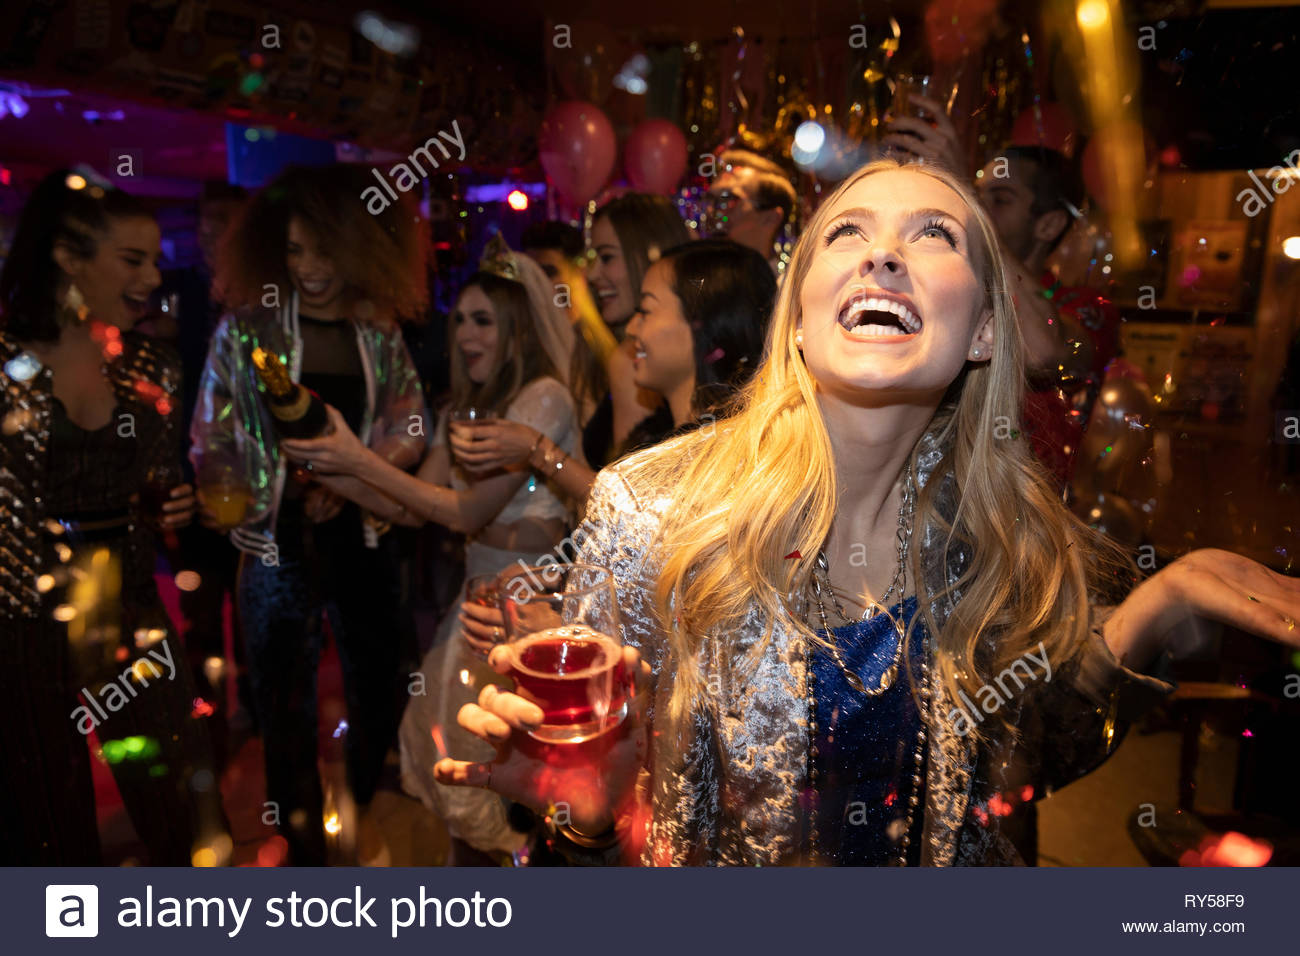 Confettis tombant sur carefree woman drinking cocktail in nightclub Photo Stock